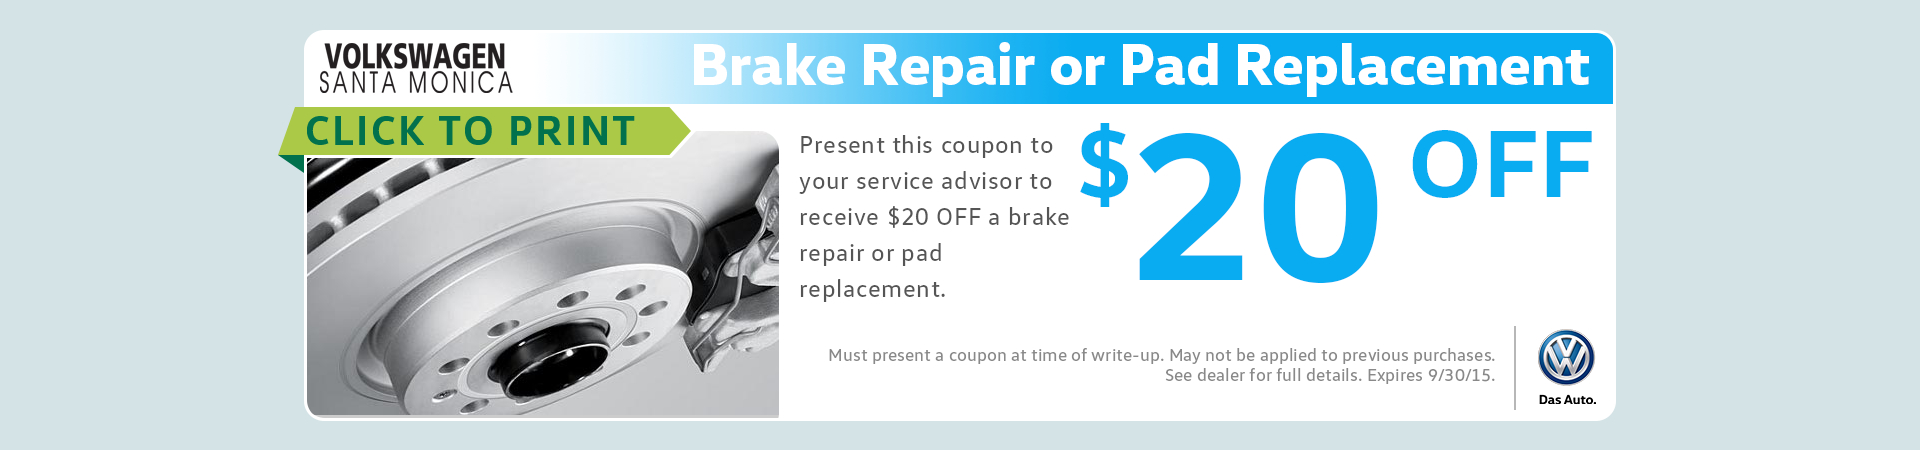 Genuine VW Brake Pad Replacement Service Special serving Santa Monica, CA